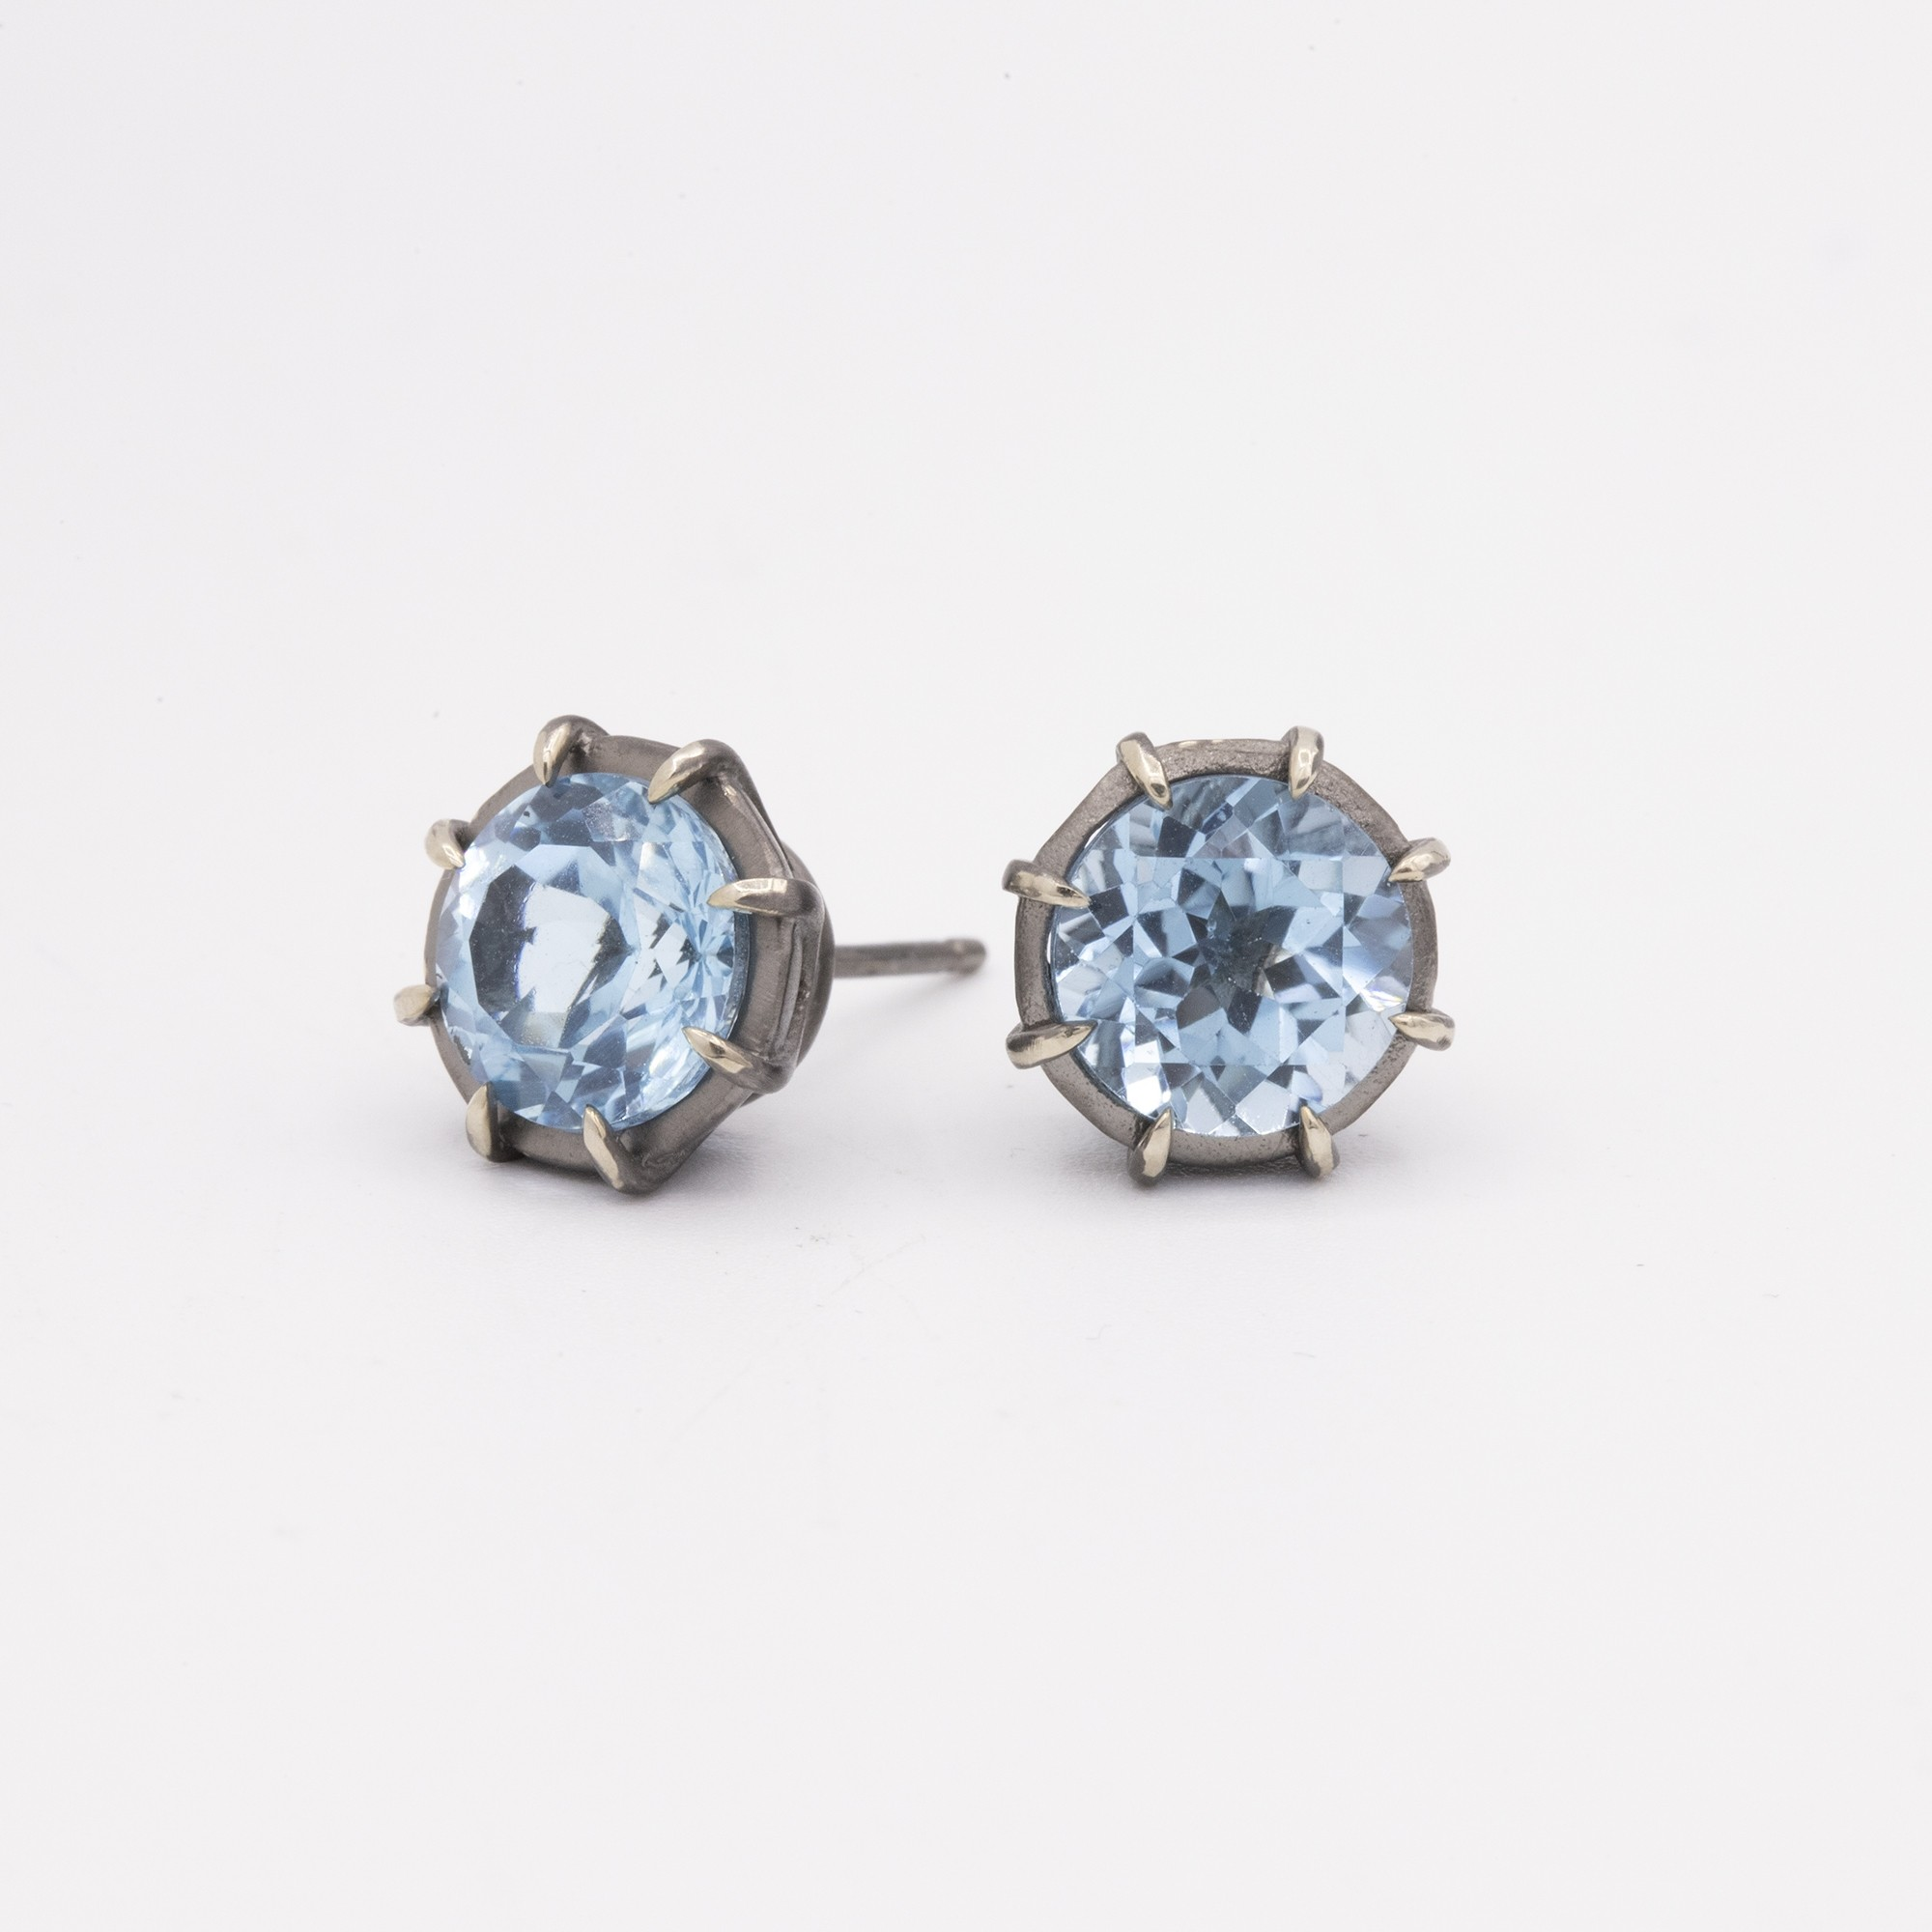 GEMMA COLLECTION BLUE TOPAZ PUSHBACK STUD EARRINGS